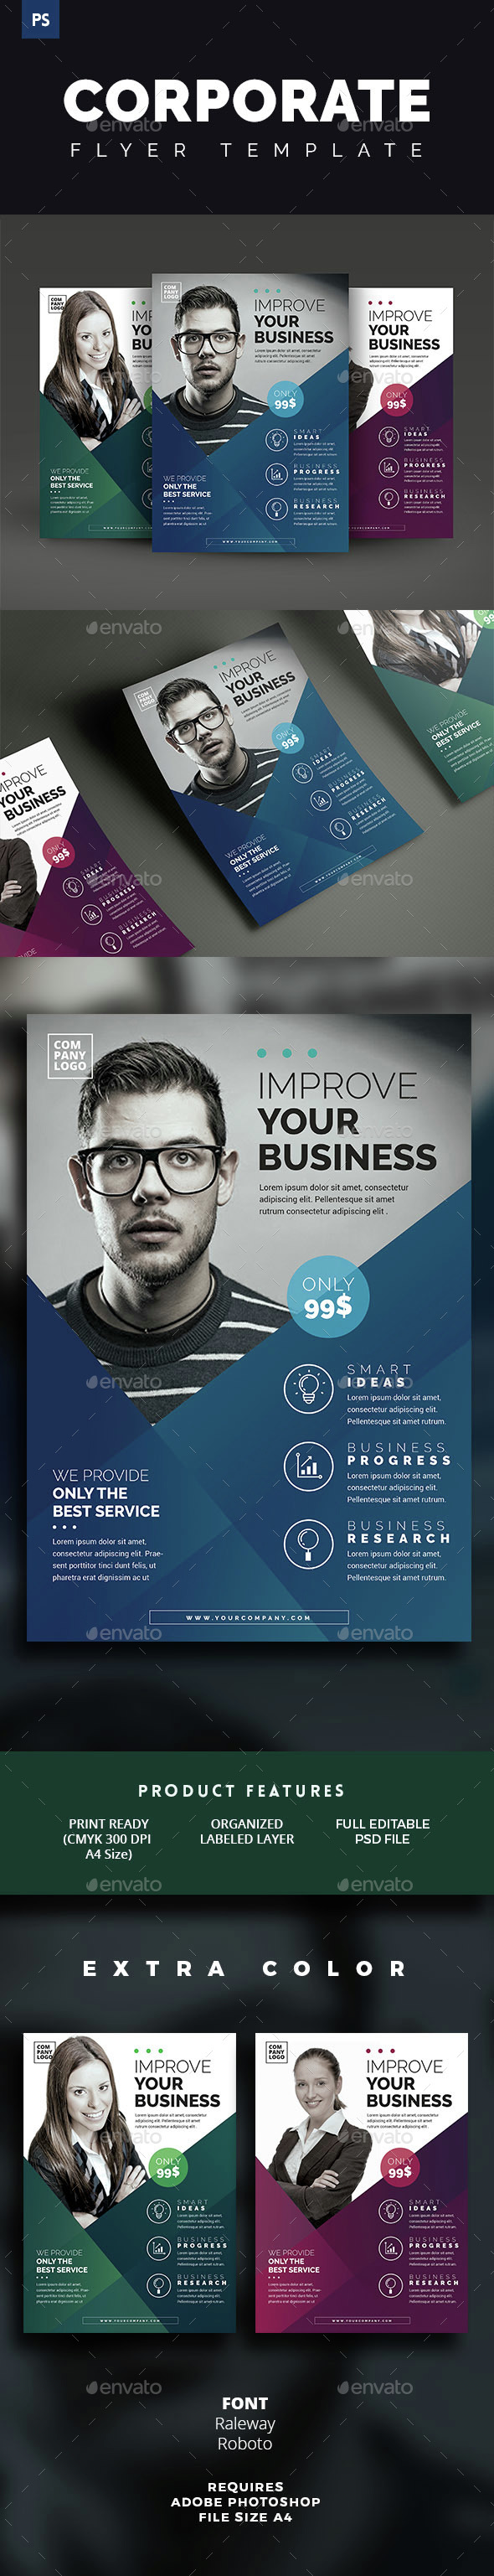 Corporate Flyer Template By Vynetta Graphicriver